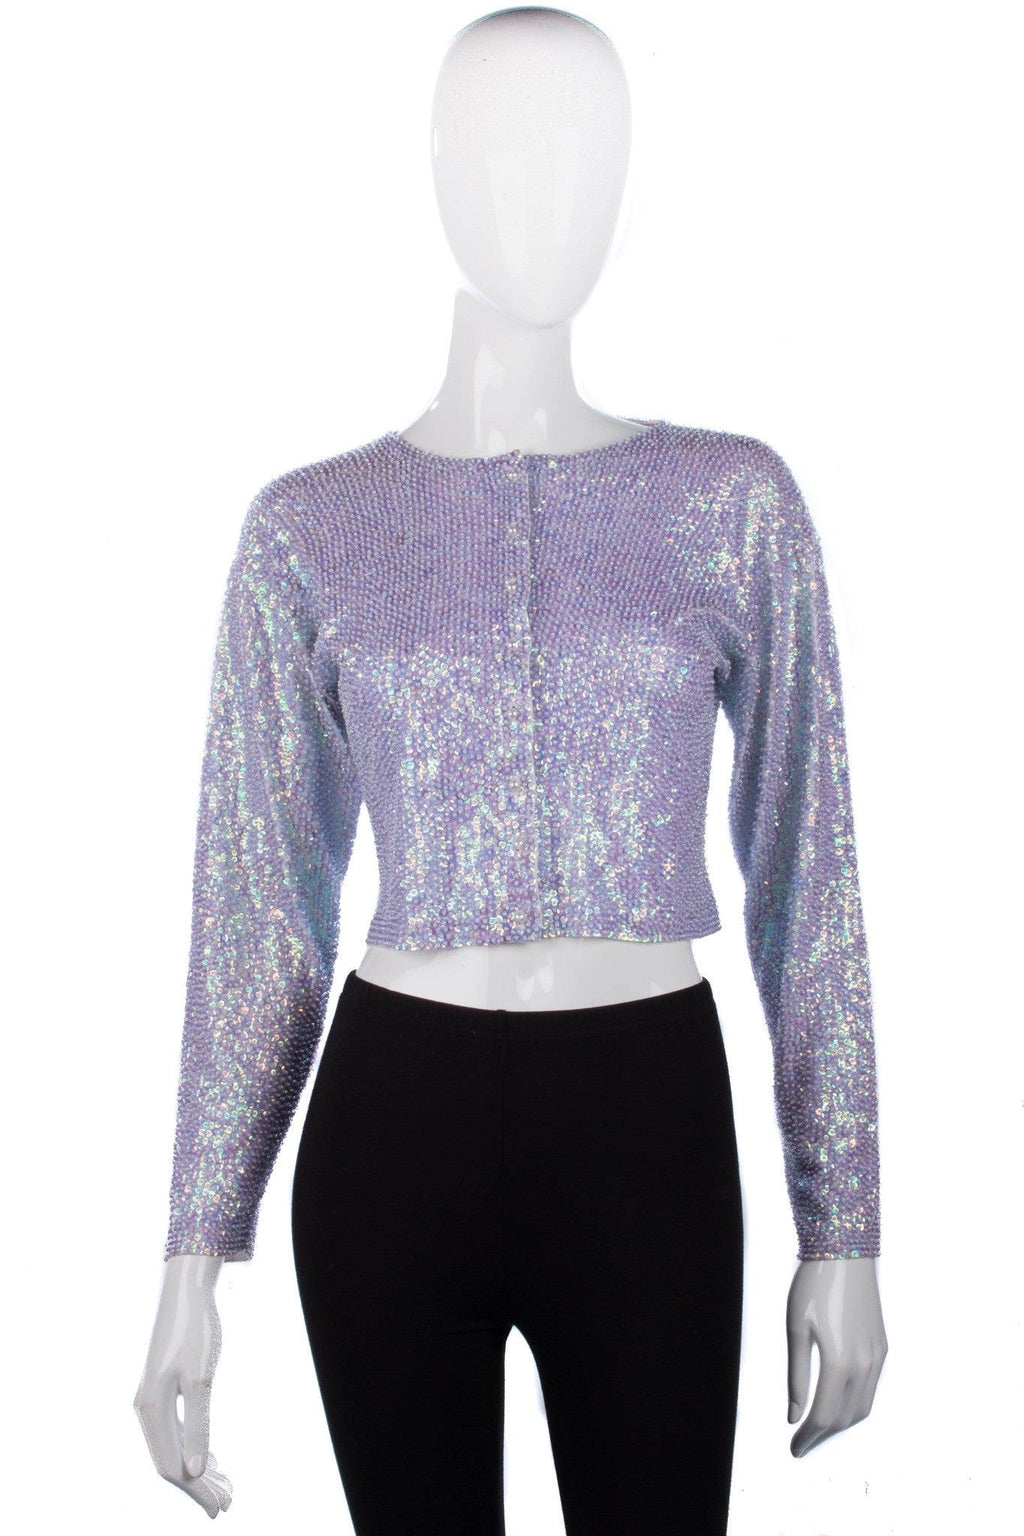 Kookai Sparkly Evening Top/Jacket Lilac Sequinned Size S